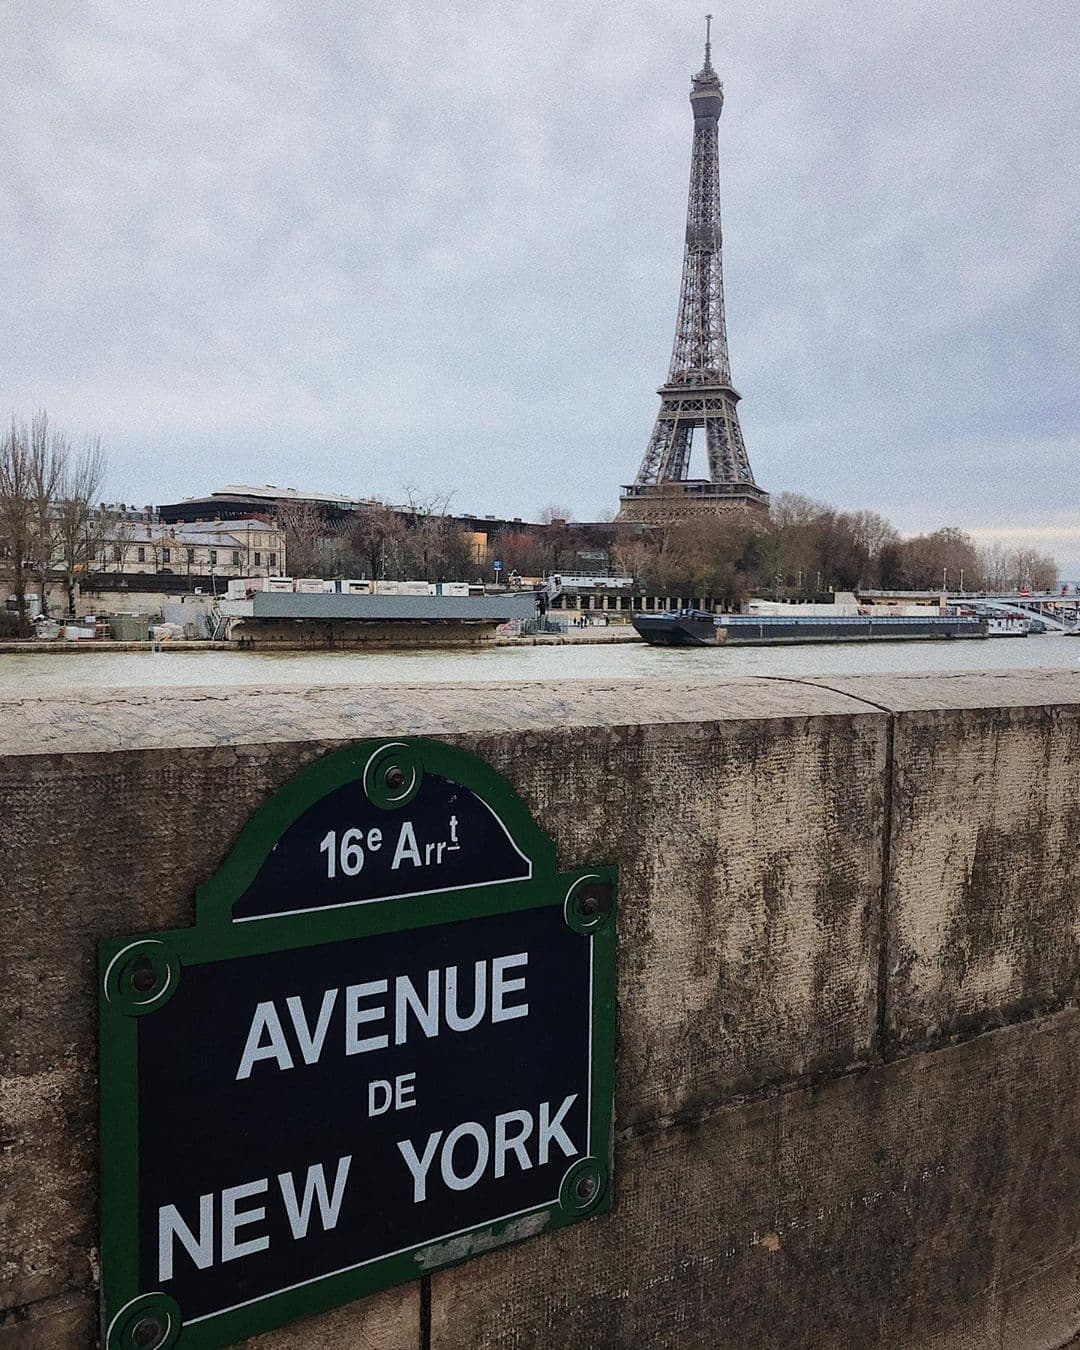 View of the Eiffel Tower on Avenue de New York in Paris